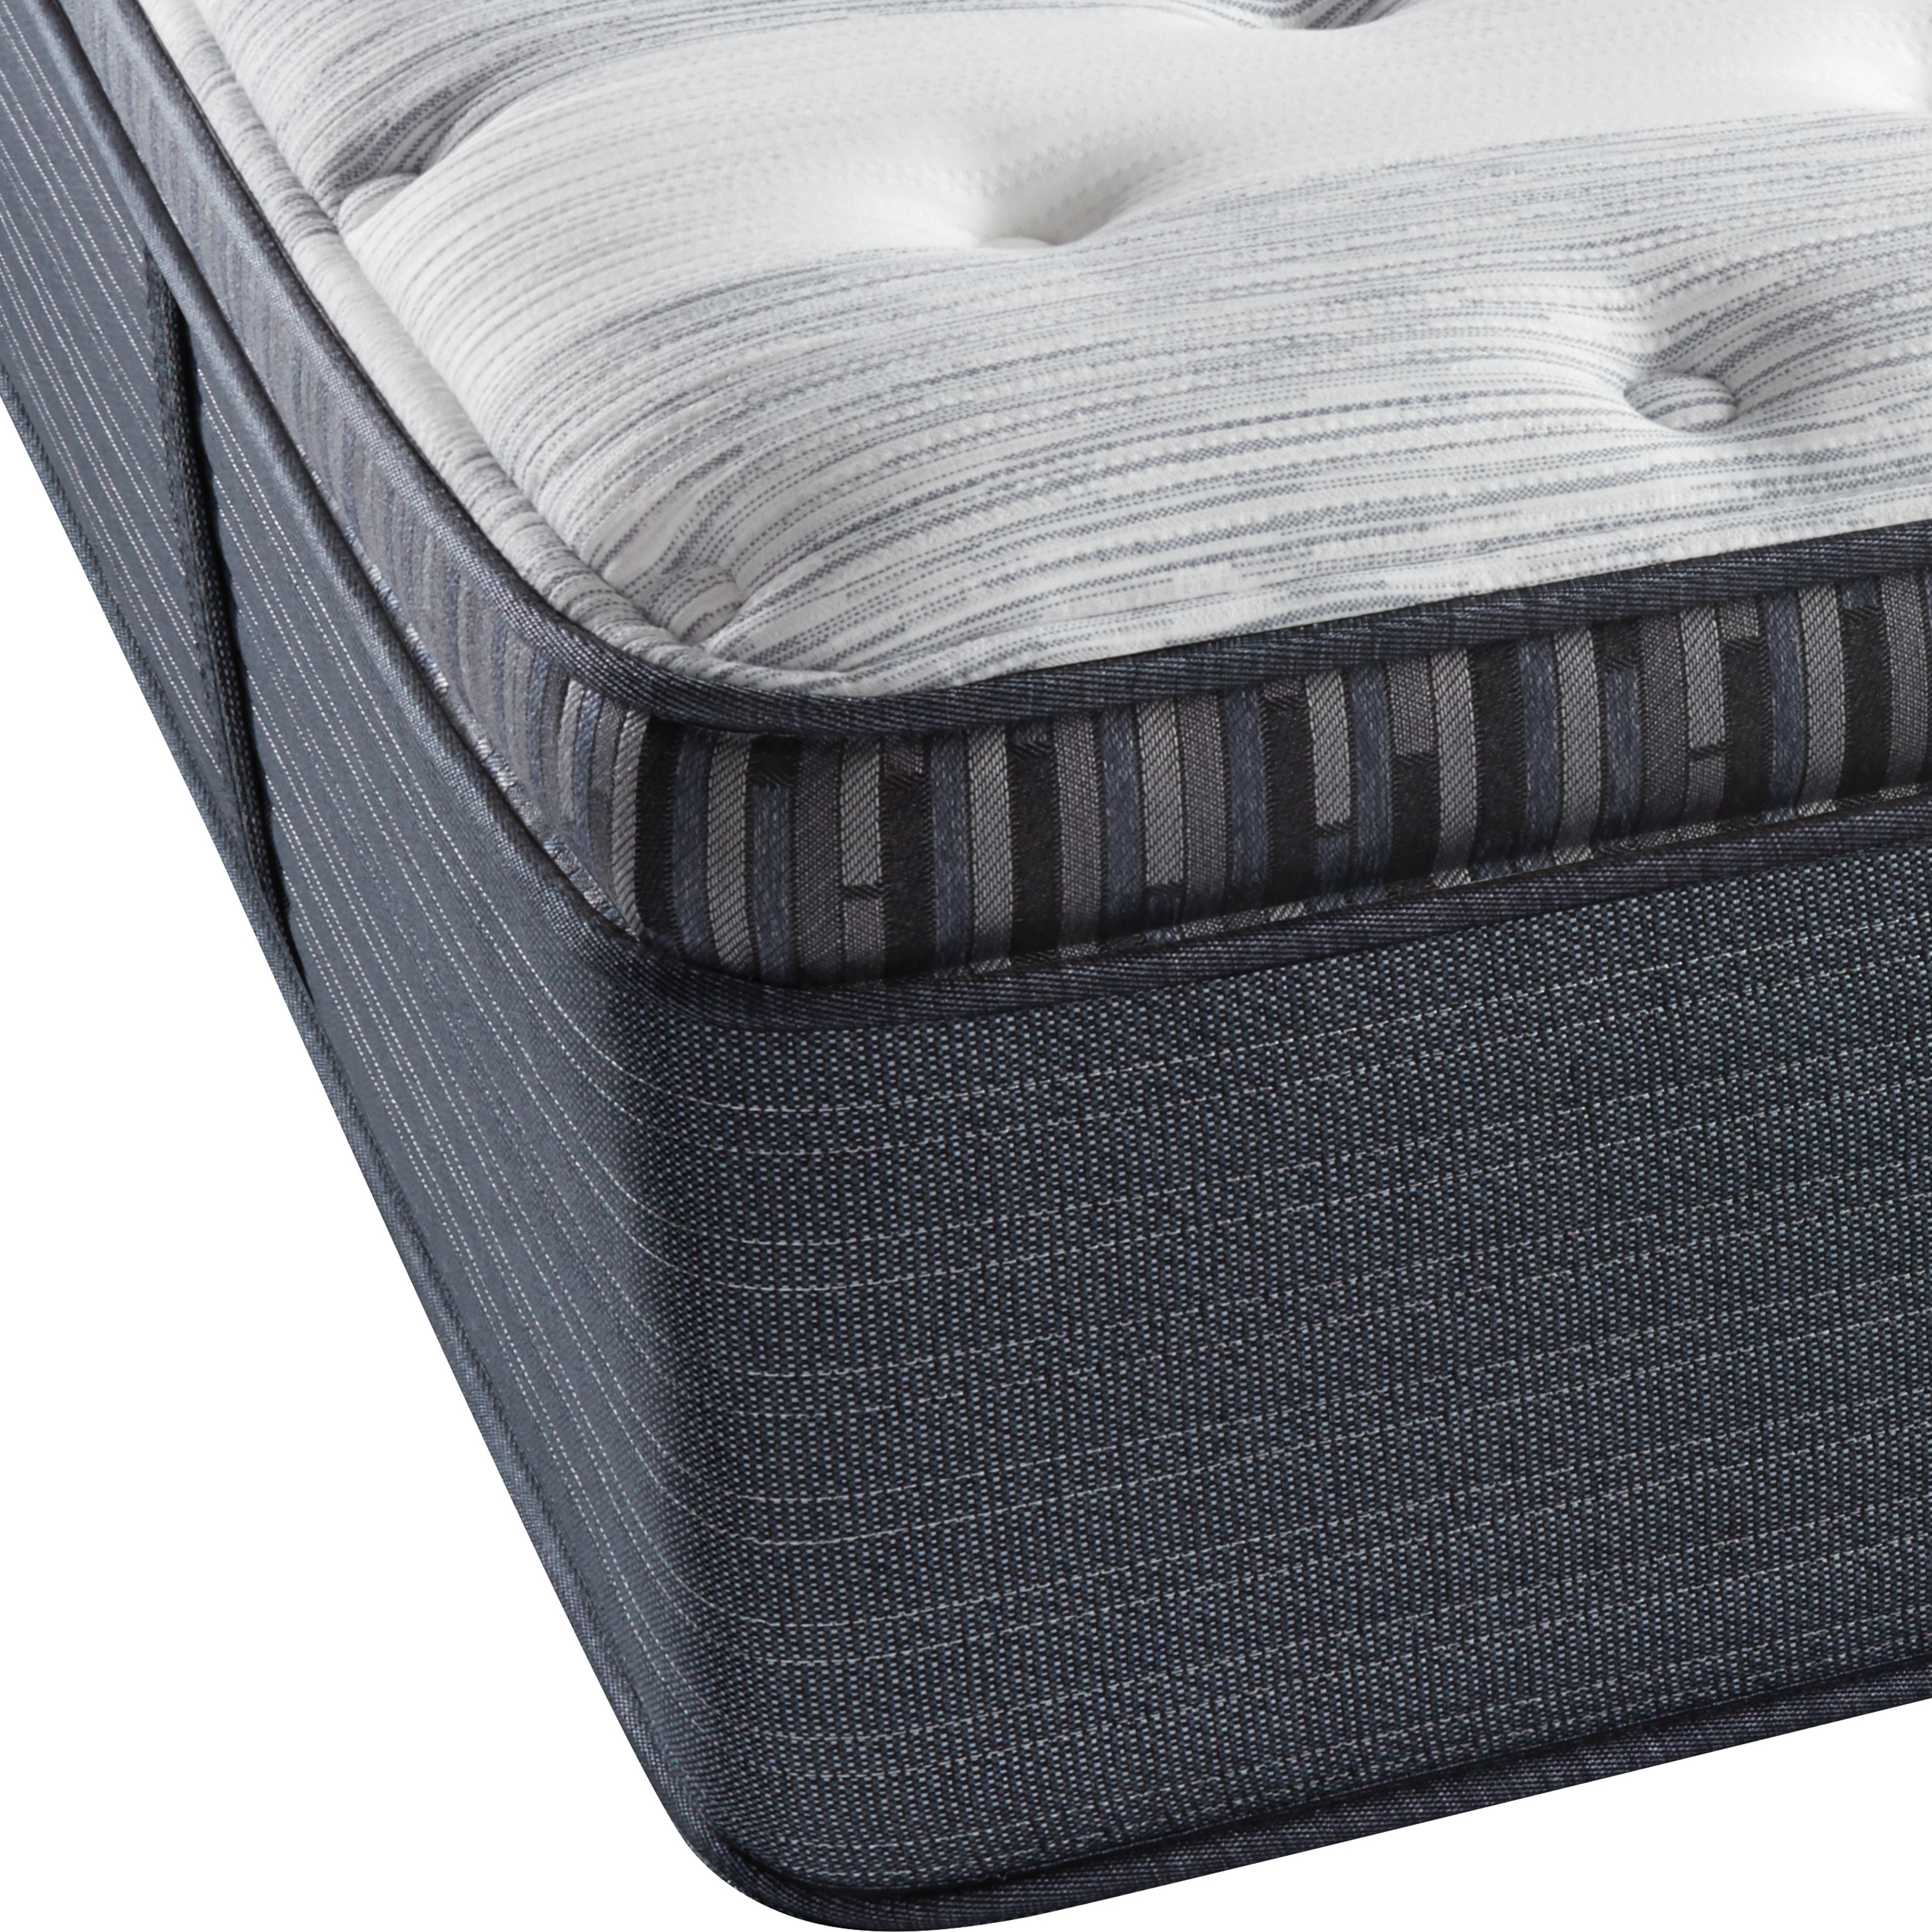 Sealy Posturepedic Backcare Elite Mattress Beautyrest Platinum Westbrook Pillow Top Luxury Firm King Mattress